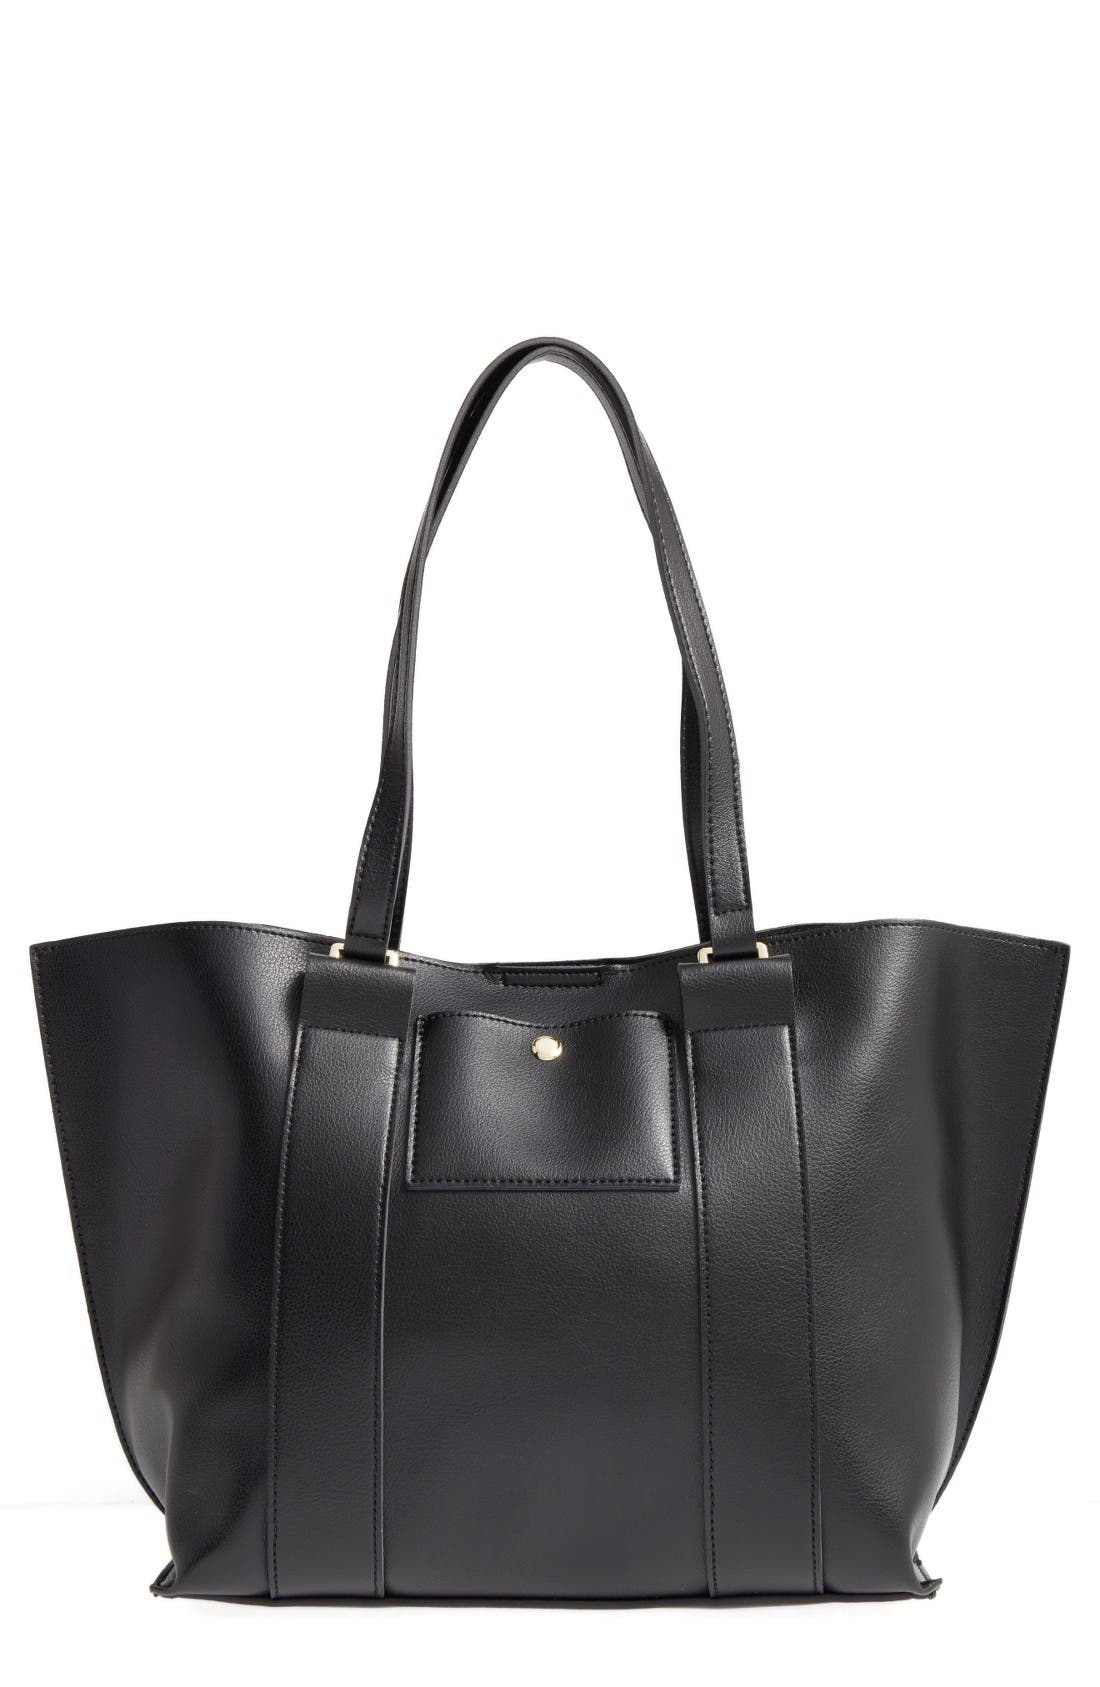 Alternate Image 1 Selected - Emperia Faux Leather Tote (Special Purchase)